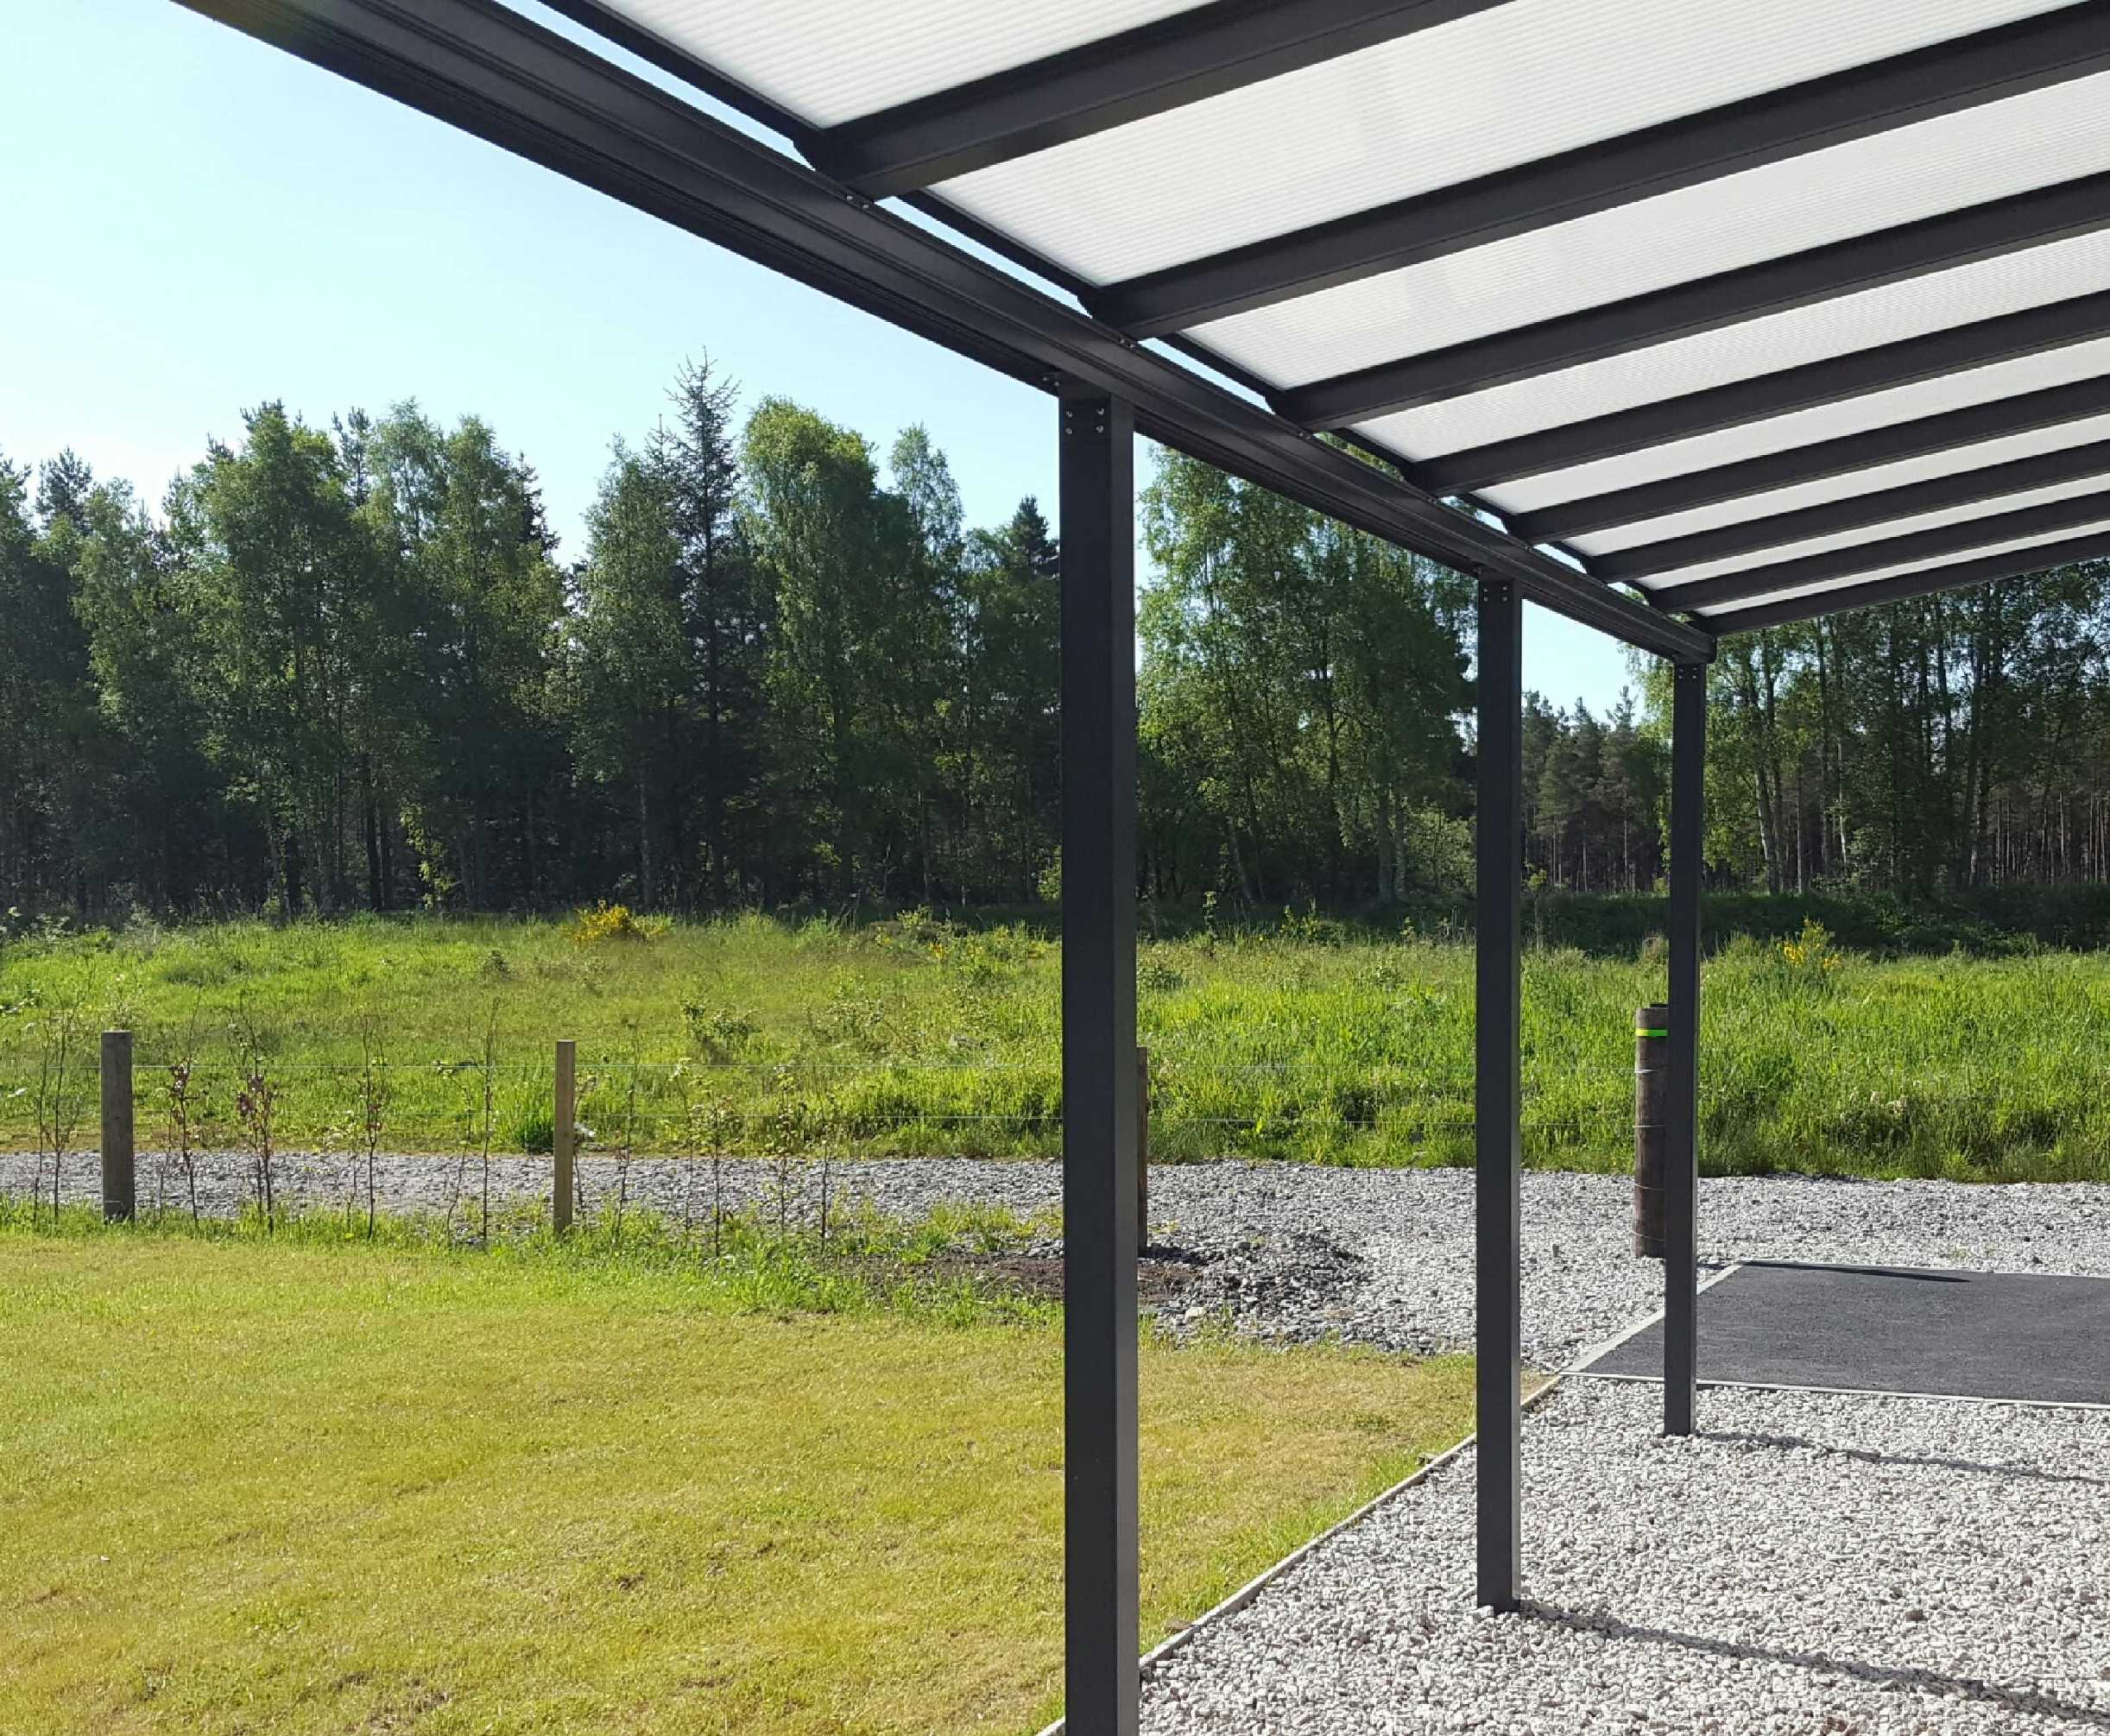 Omega Smart Lean-To Canopy, Anthracite Grey, UNGLAZED for 6mm Glazing - 2.8m (W) x 3.0m (P), (2) Supporting Posts